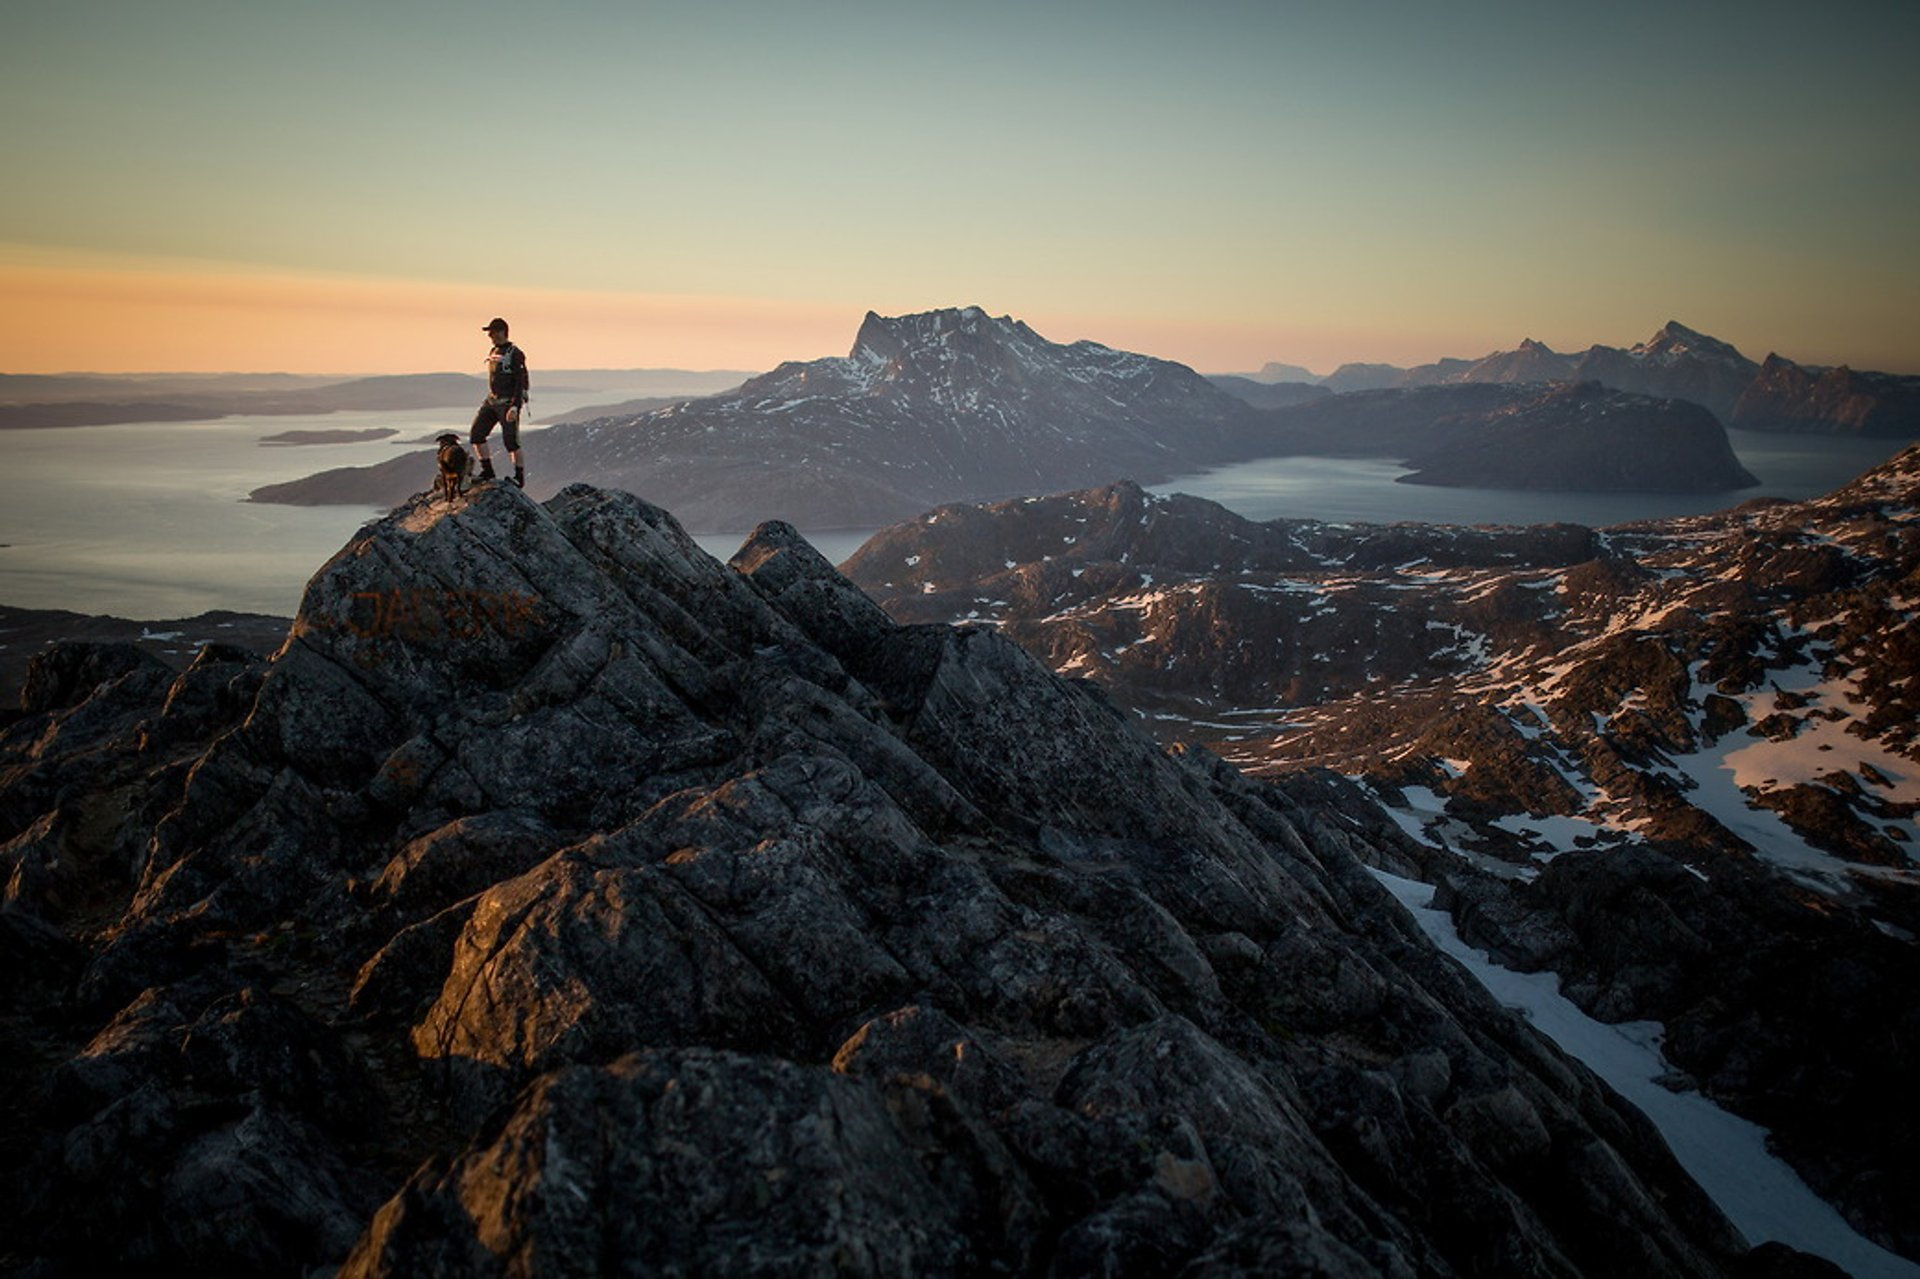 A hiker on Ukkusissaq - Stroe Malene in the midnight sun overlooking Sermitsiaq near Nuuk